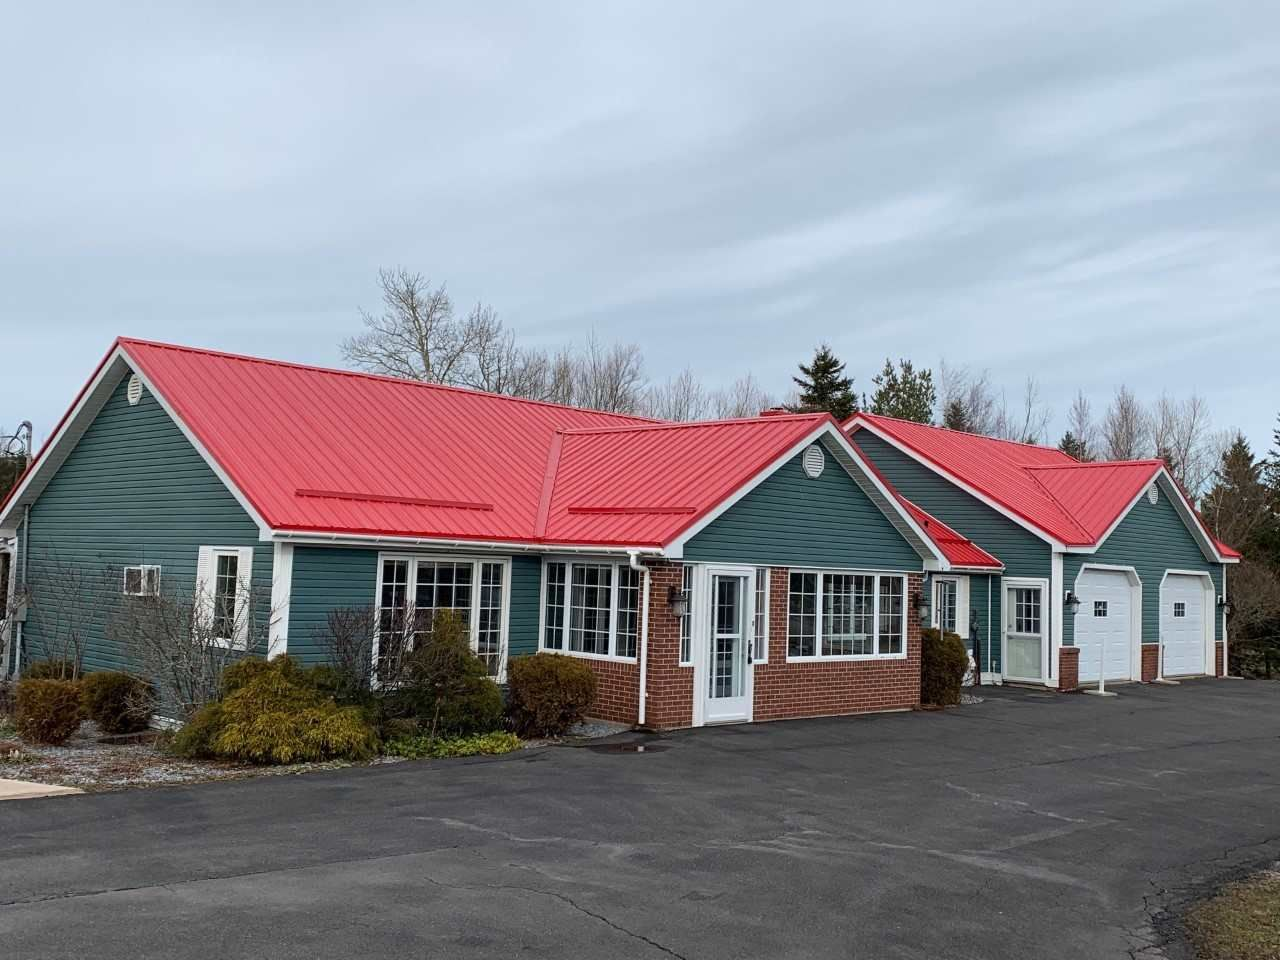 Main Photo: 5019 Highway 4 in Alma: 108-Rural Pictou County Residential for sale (Northern Region)  : MLS®# 202025835